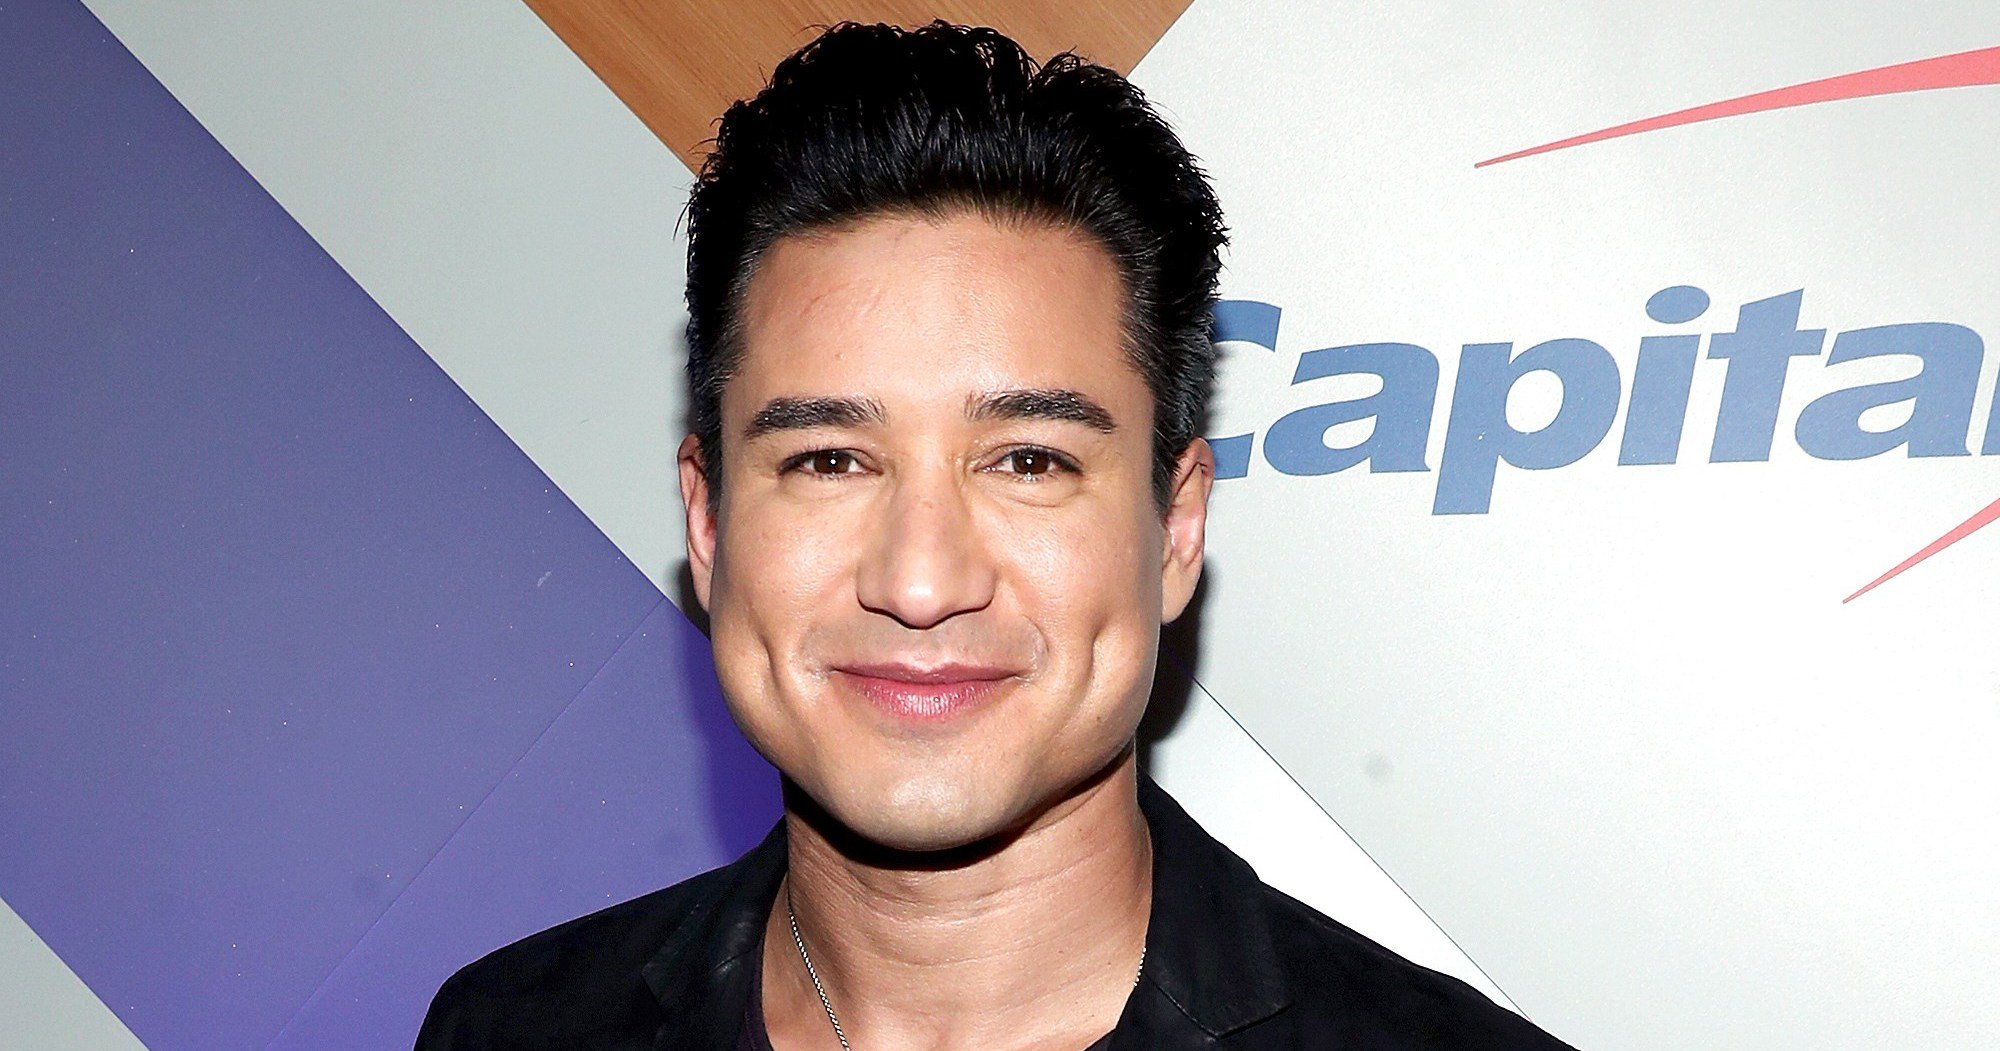 Mario Lopez Talks College Admissions Scandal: 'Nice People Make Mistakes'